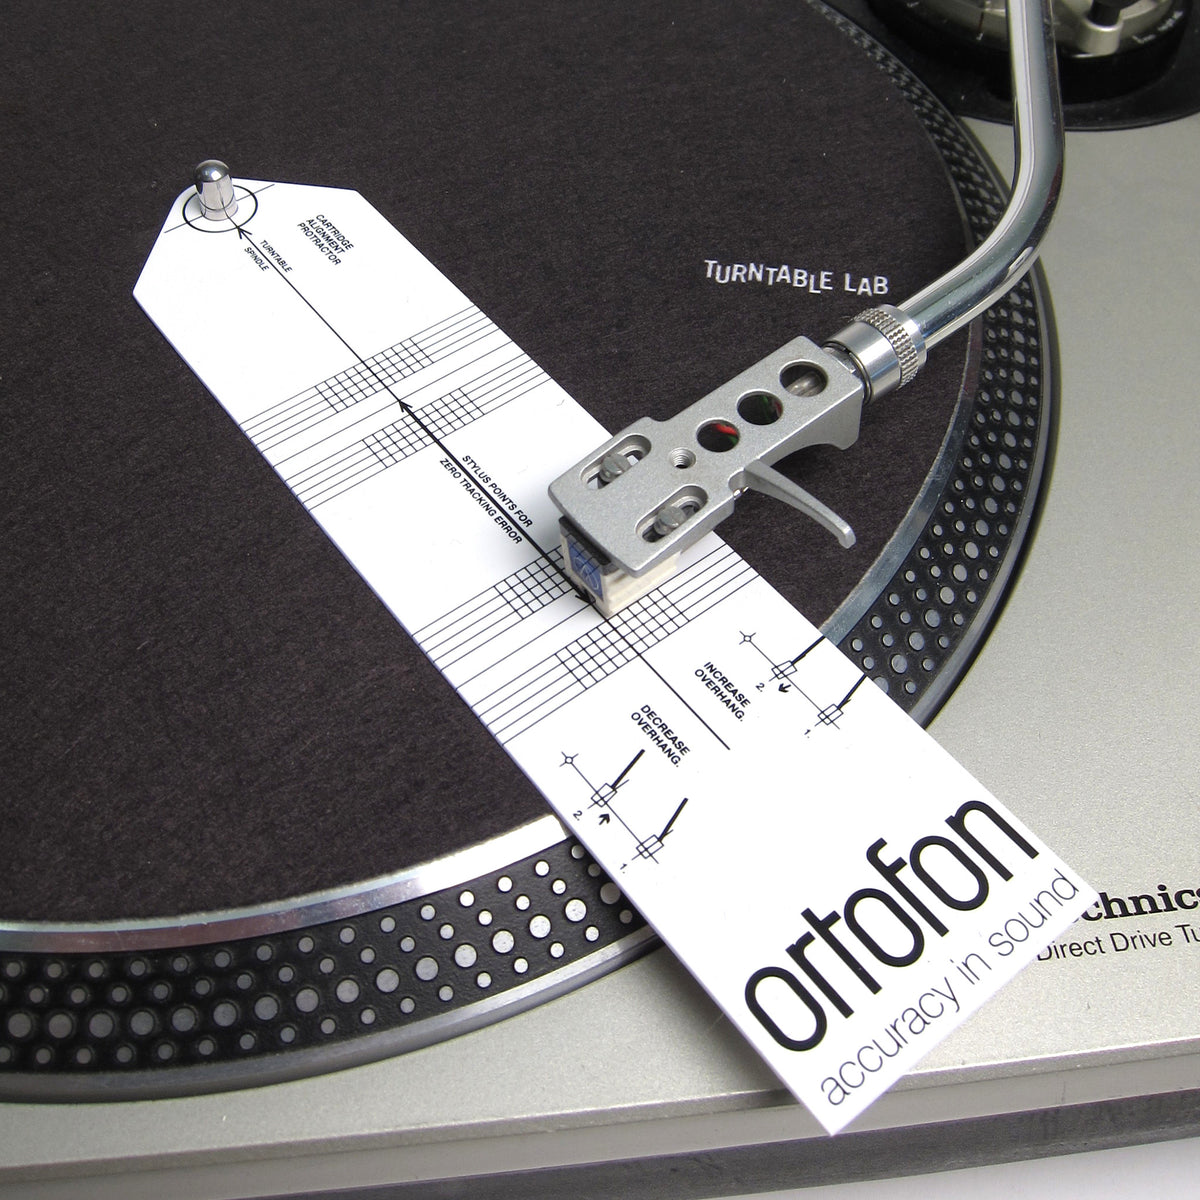 Ortofon: Cartridge Alignment Tool